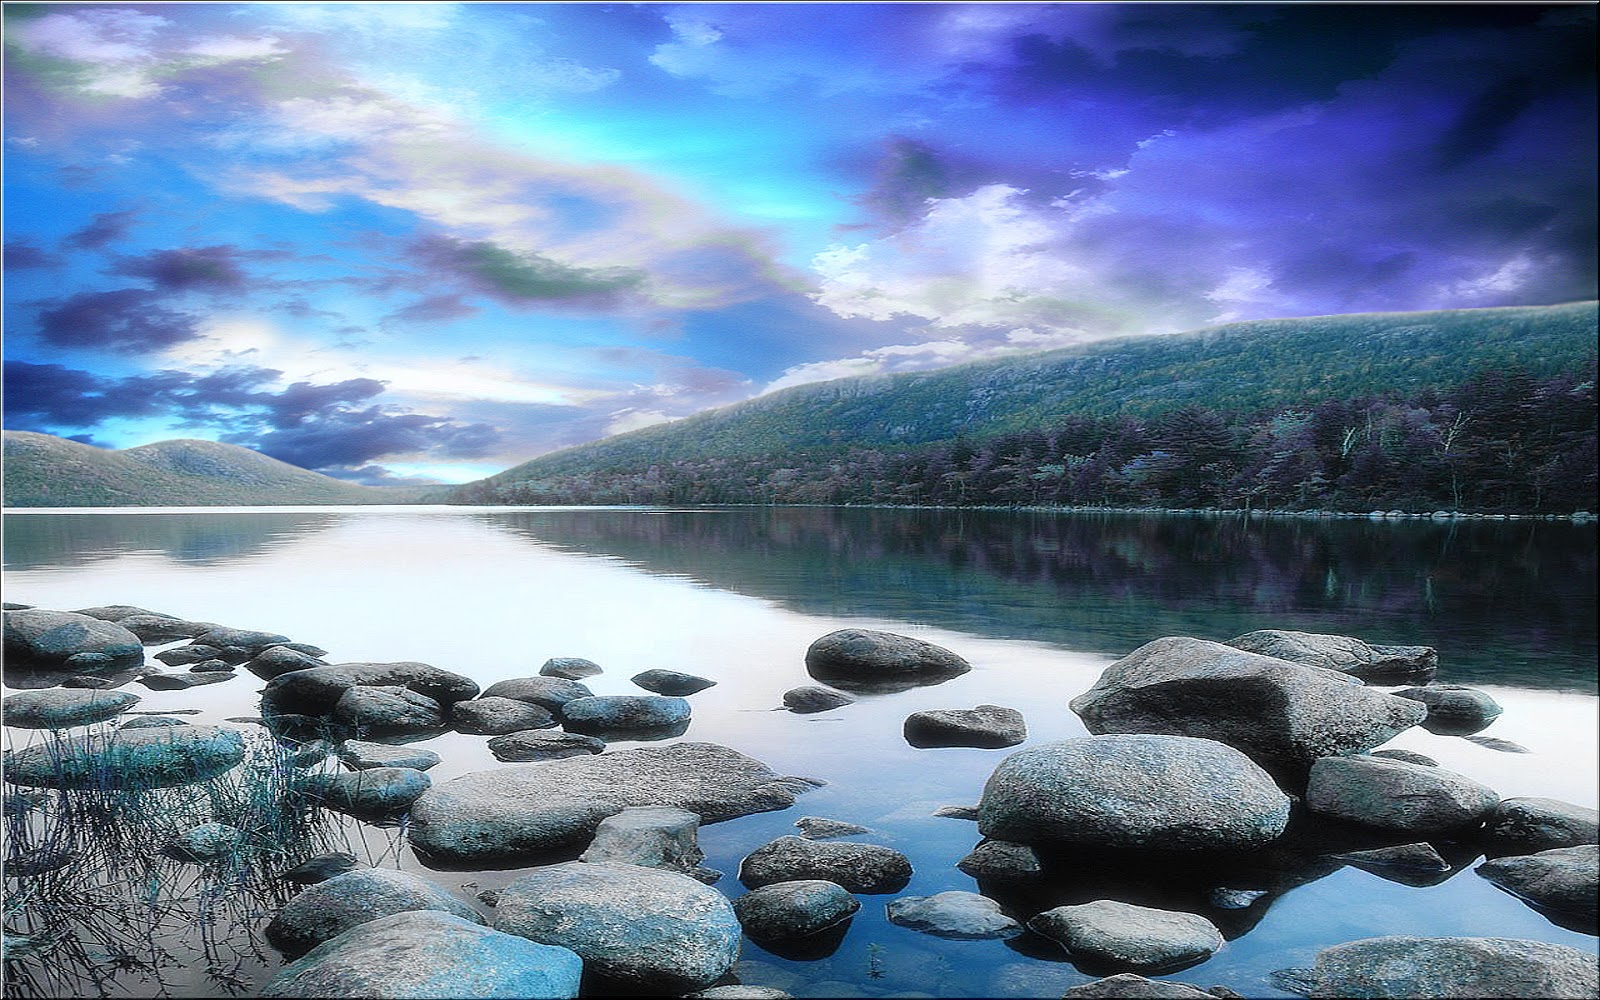 Pcmovies hd superb nature wallpapers - Nature wallpaper hd 16 9 ...